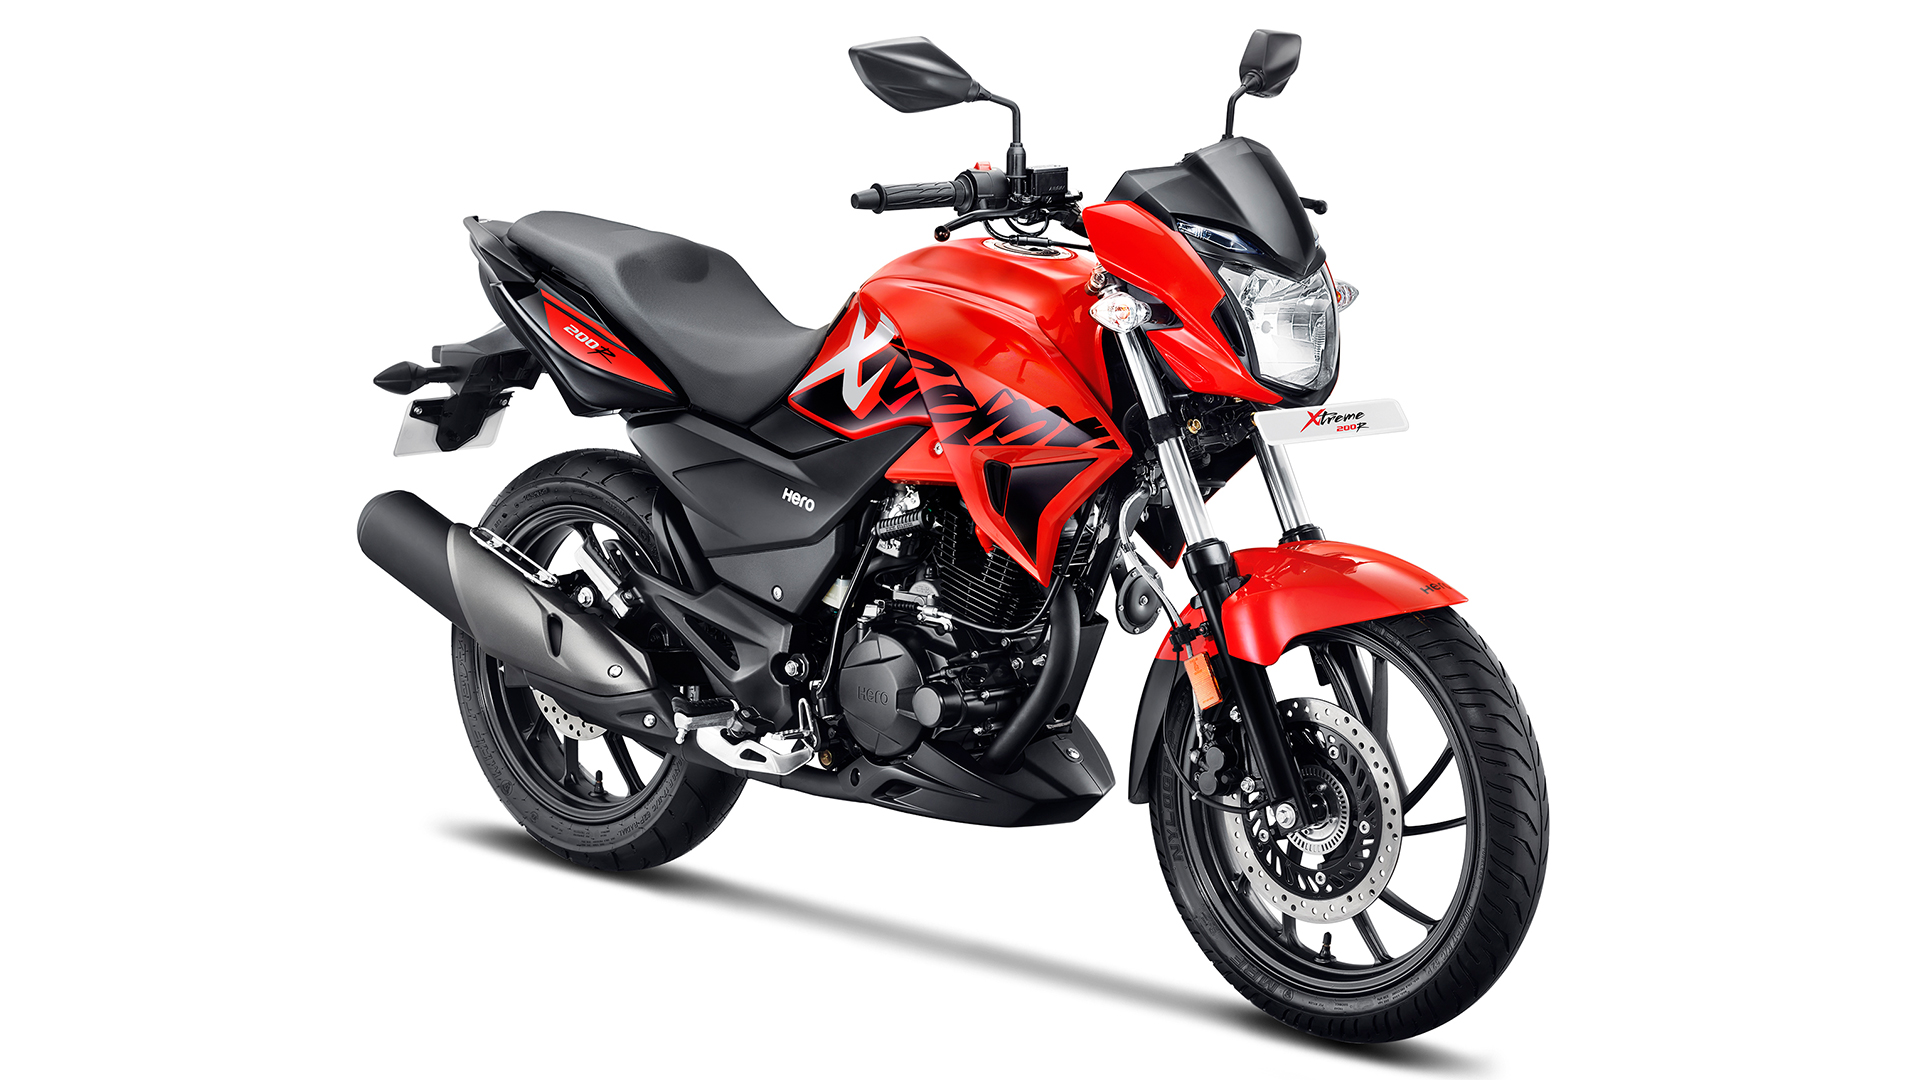 Hero Xtreme 200R 2018 - Price, Mileage, Reviews, Specification ...